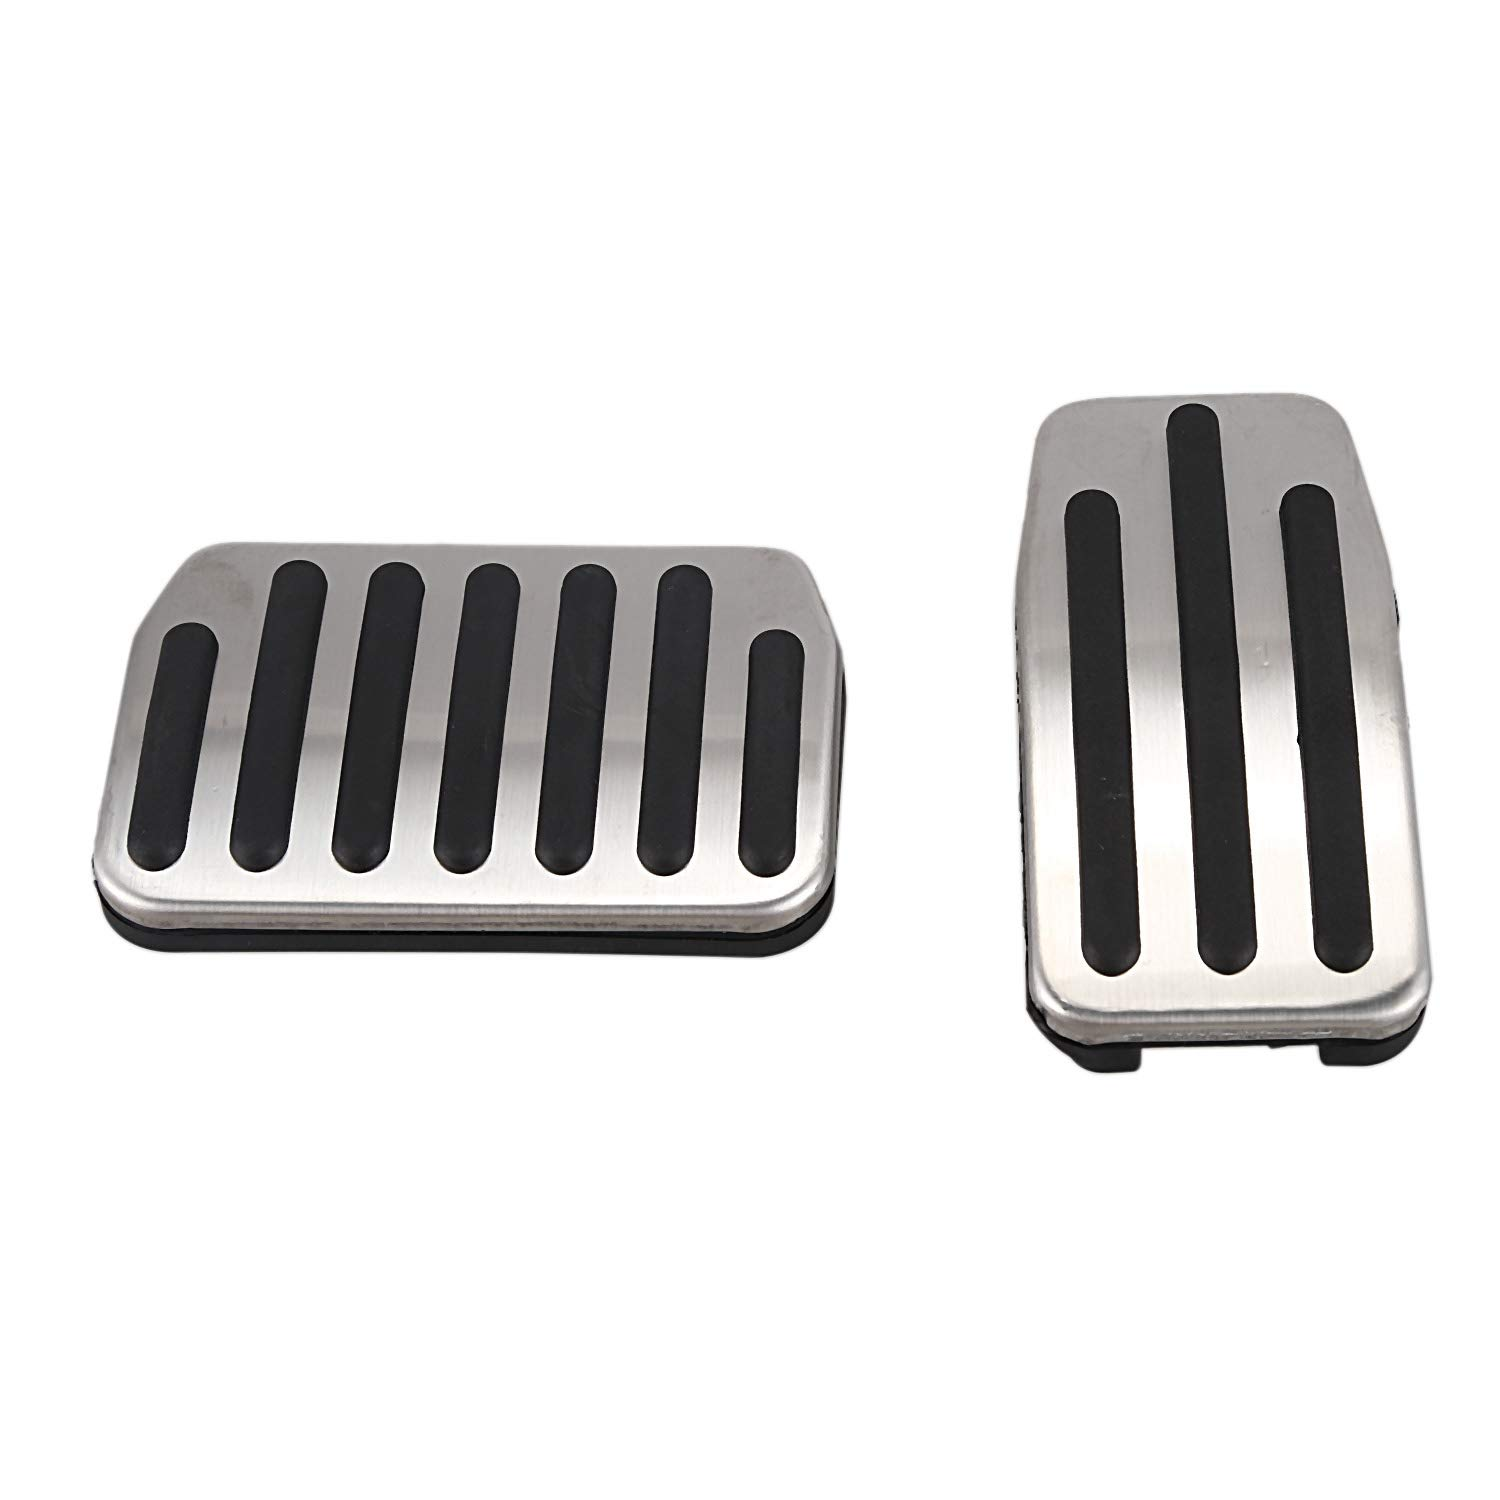 Moligh doll Aluminum Alloy Foot Pedal for Tesla Model 3 Accelerator Gas Fuel Brake Pedal Rest Pedal Pads Mats Cover Accessories Car Styling